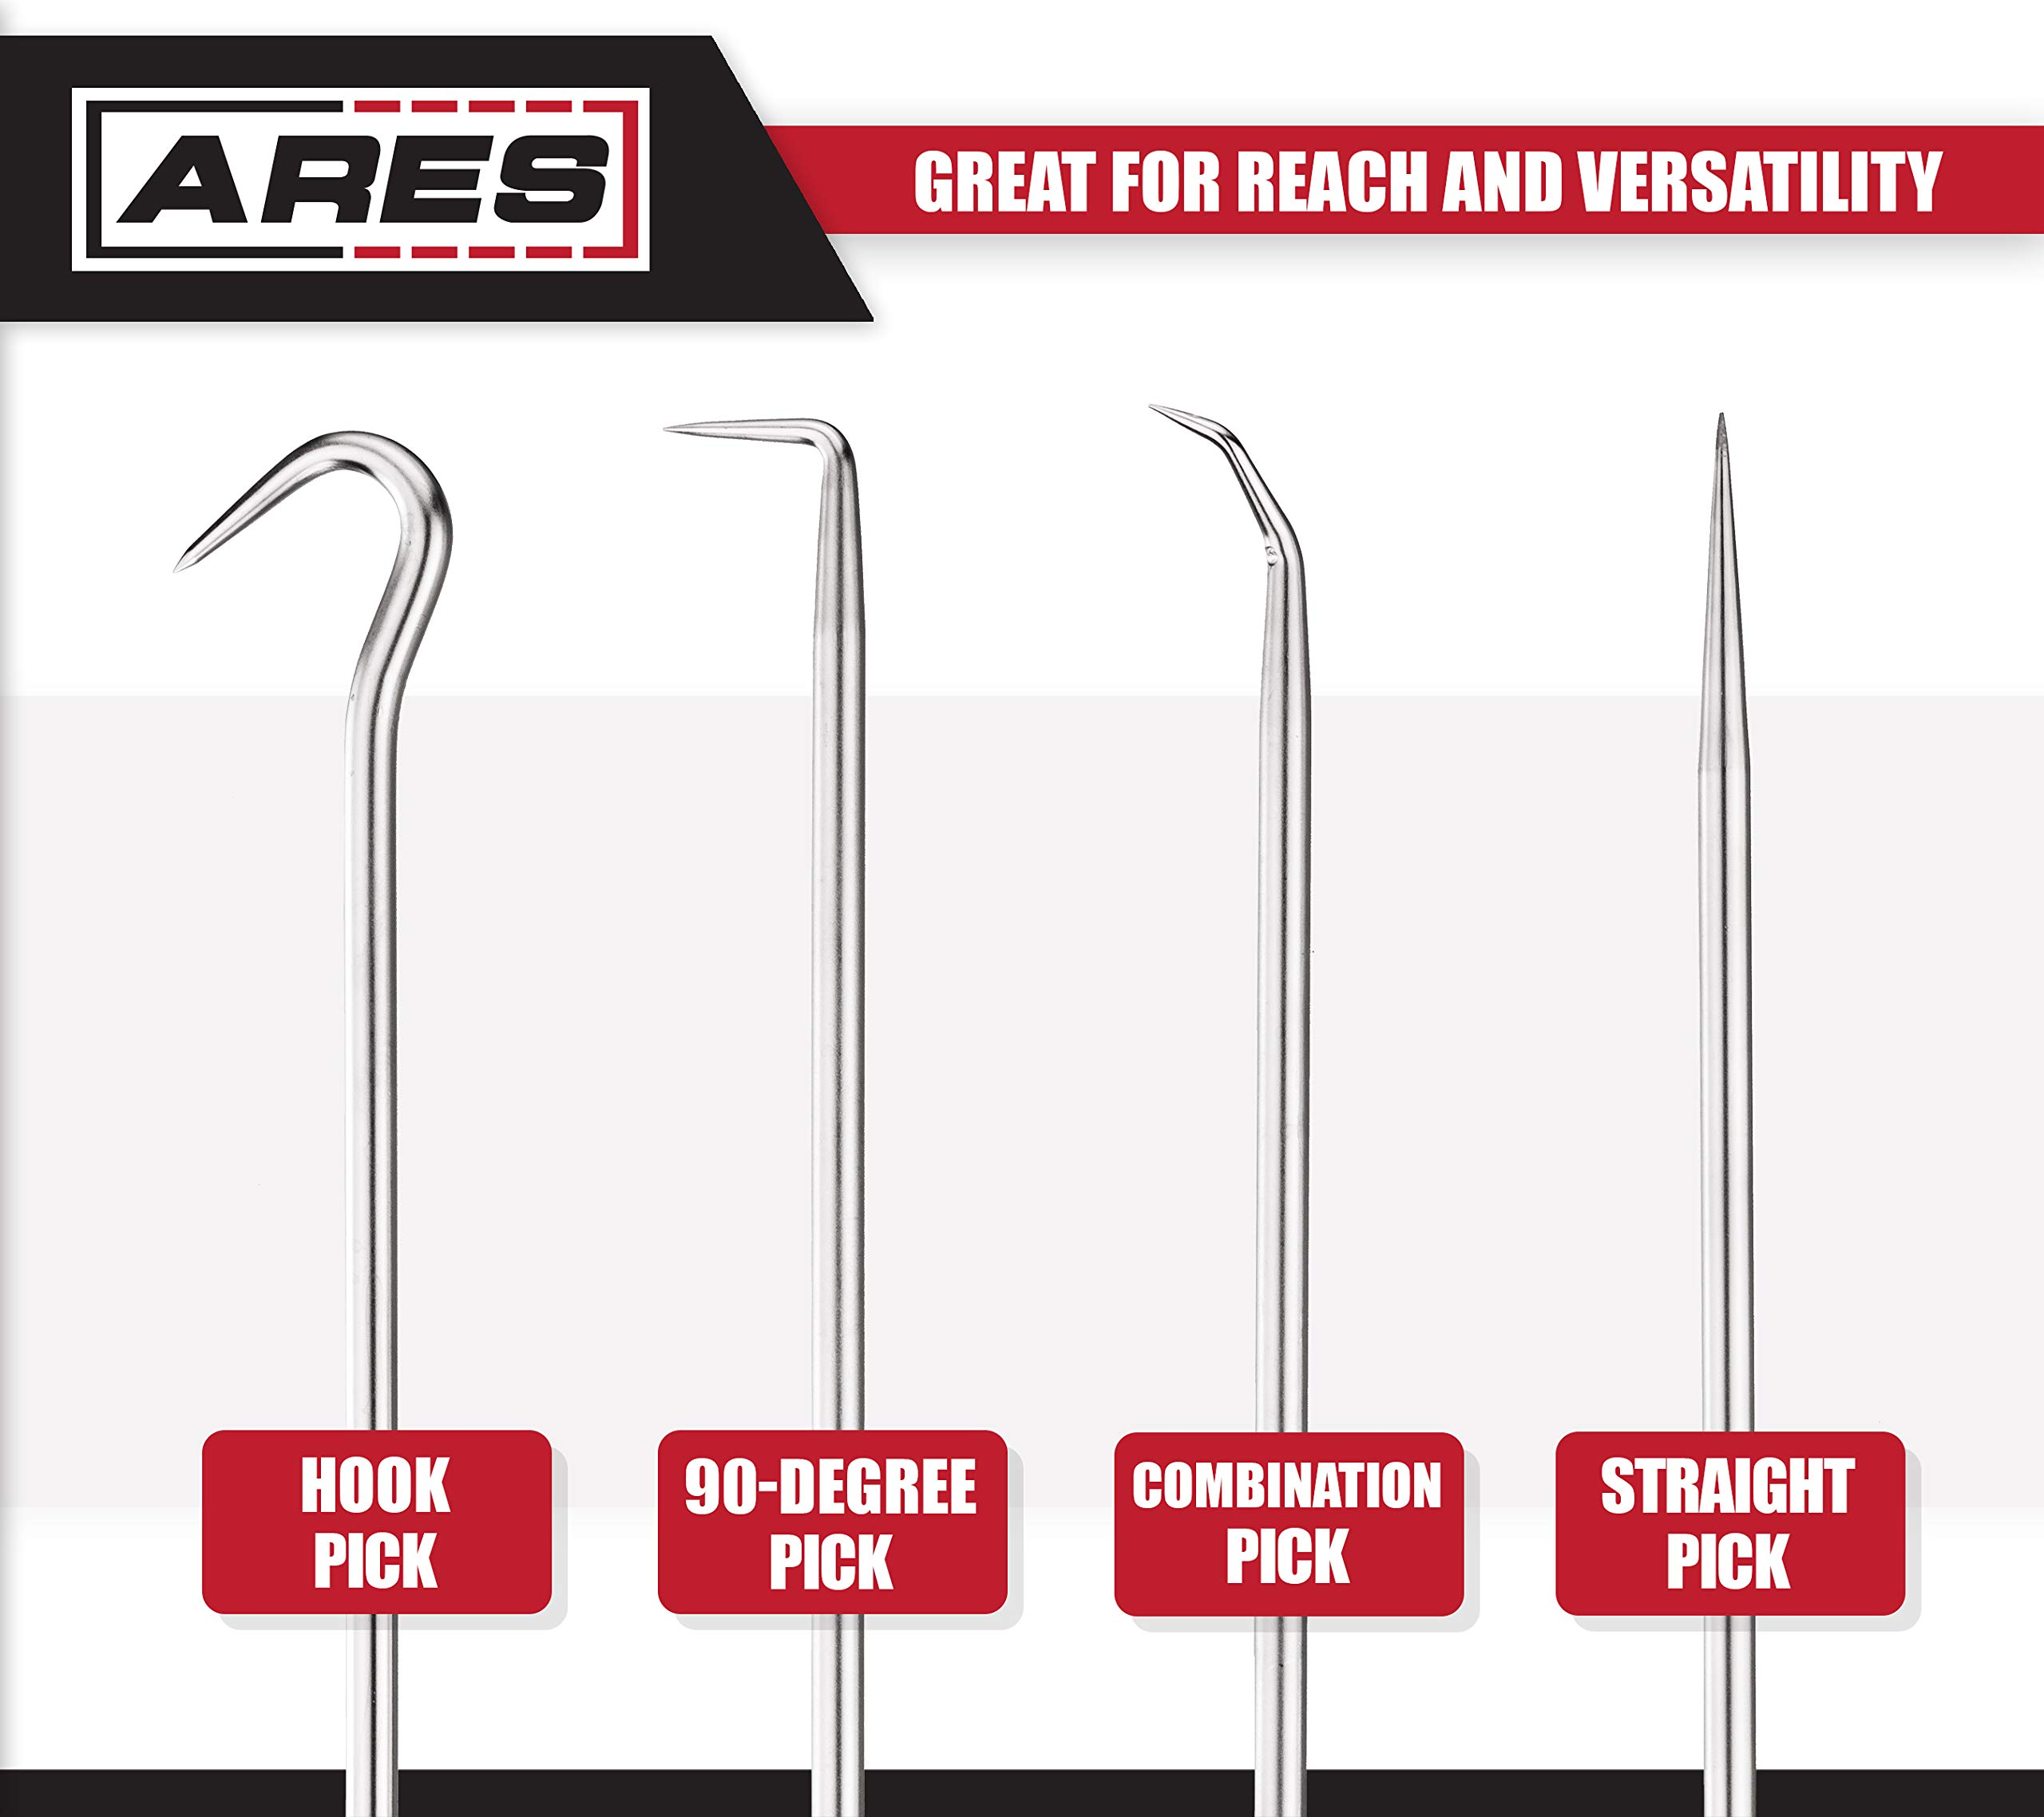 ARES 70246-4-Piece Hook and Pick Set - Includes a Large Straight Pick, 90 Degree Pick, Combination Pick and a Hook Pick - Chrome Vanadium Steel Shafts - Easily Remove Hoses, Gaskets and More by ARES (Image #3)